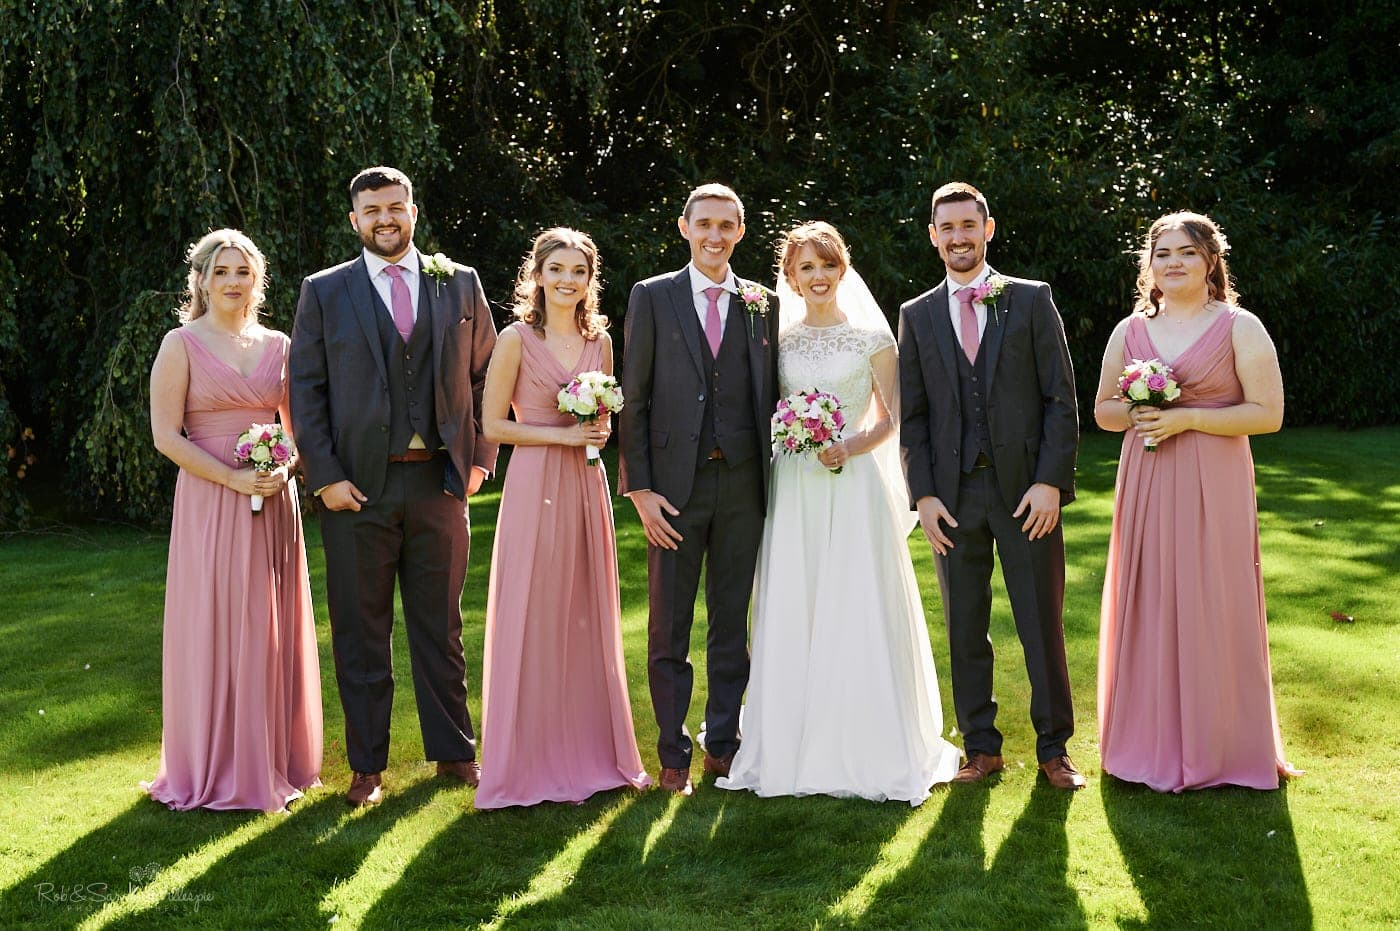 Group photo of bride, groom, bridesmaids, best man at Pendrell Hall